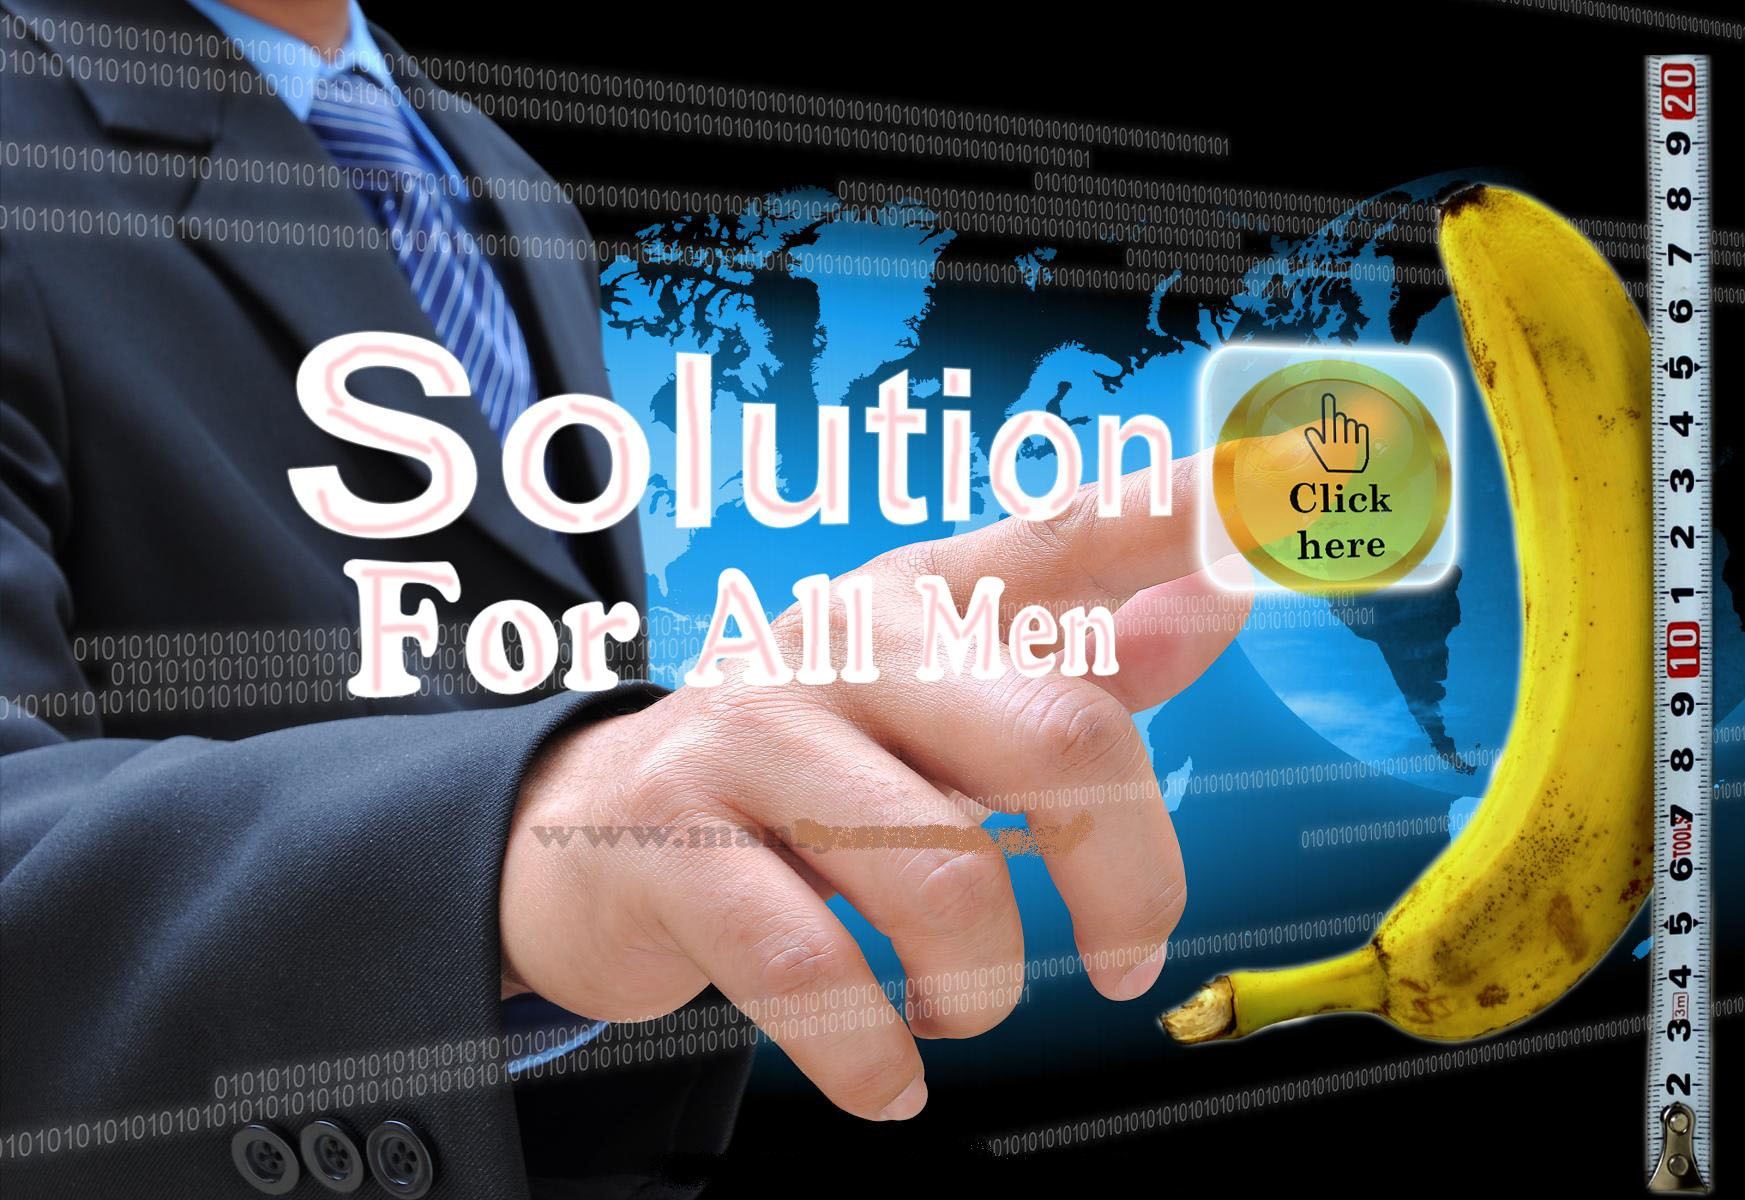 For Men: 100% Natural And Magical Remedy For 2021That Helps To Fix Weak Erection, 1mins Struggle And Makes The Manhood Size Thicker, Longer And Bigger.